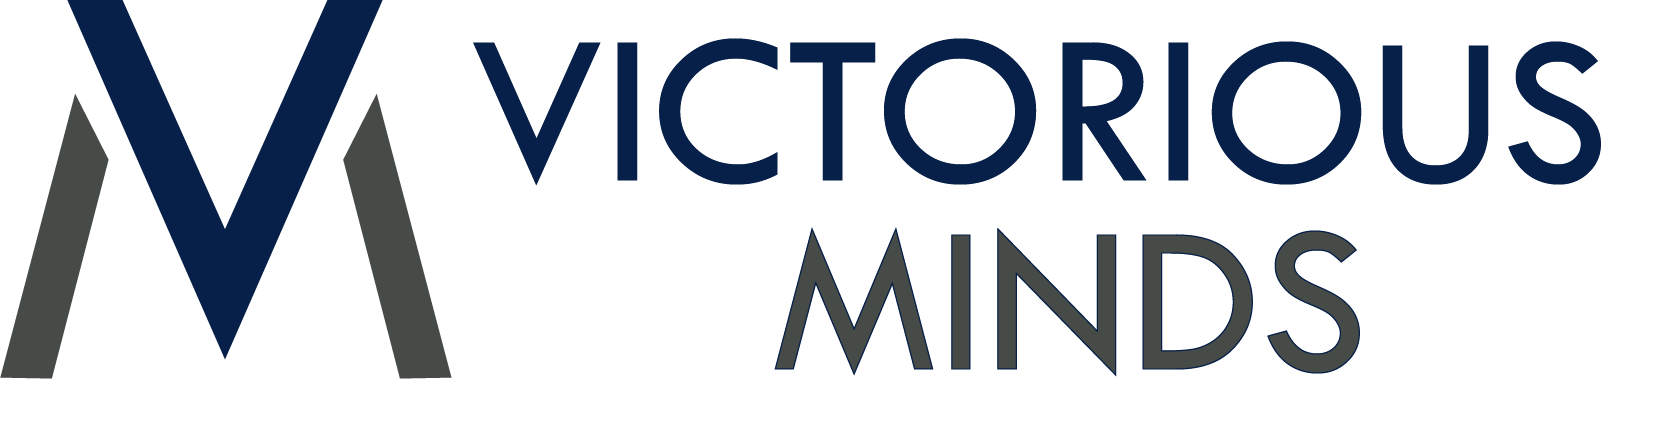 Victorious Minds